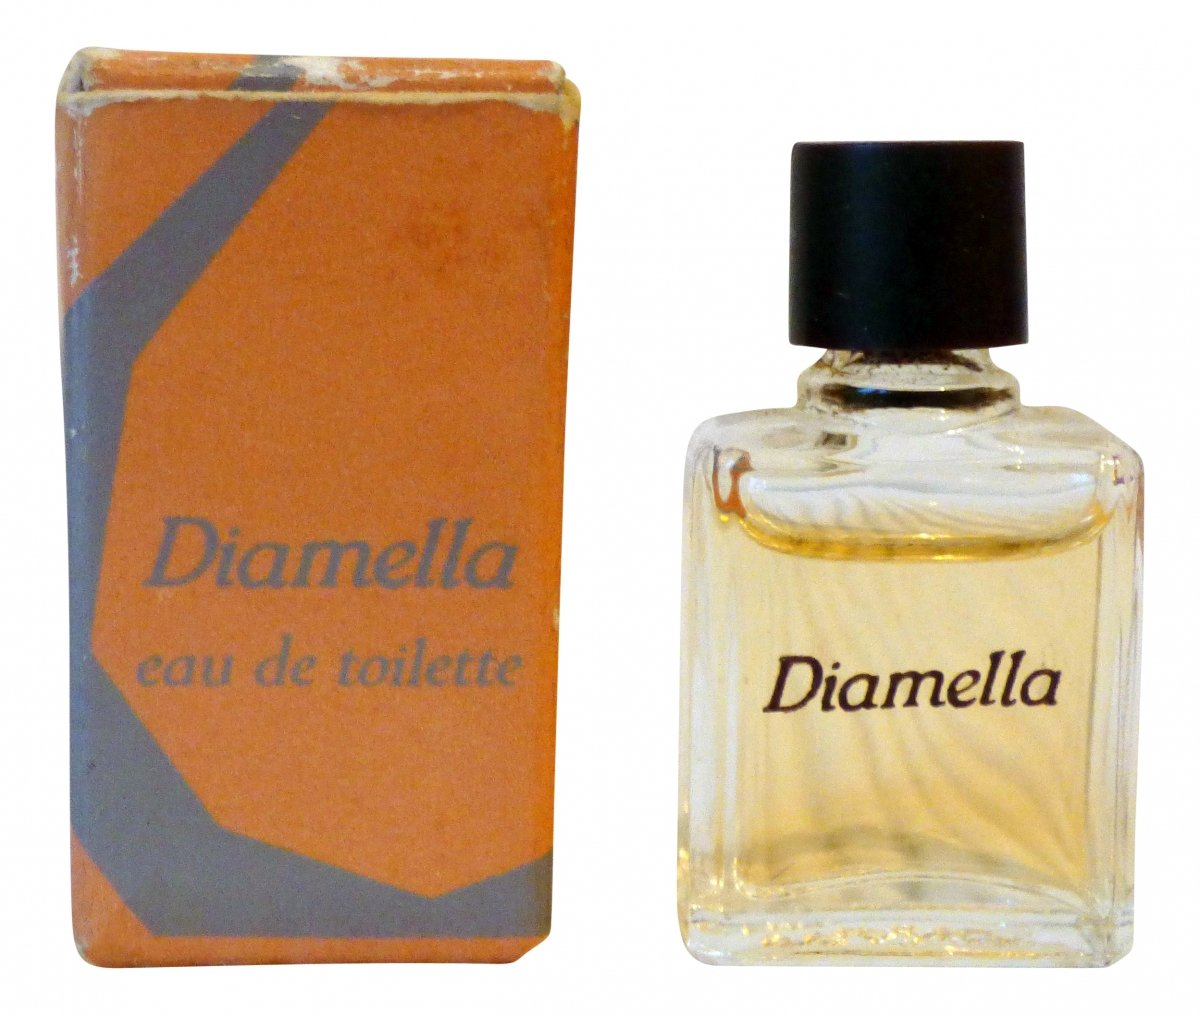 Yves rocher diamella eau de toilette reviews and rating for Arrivee d eau toilette